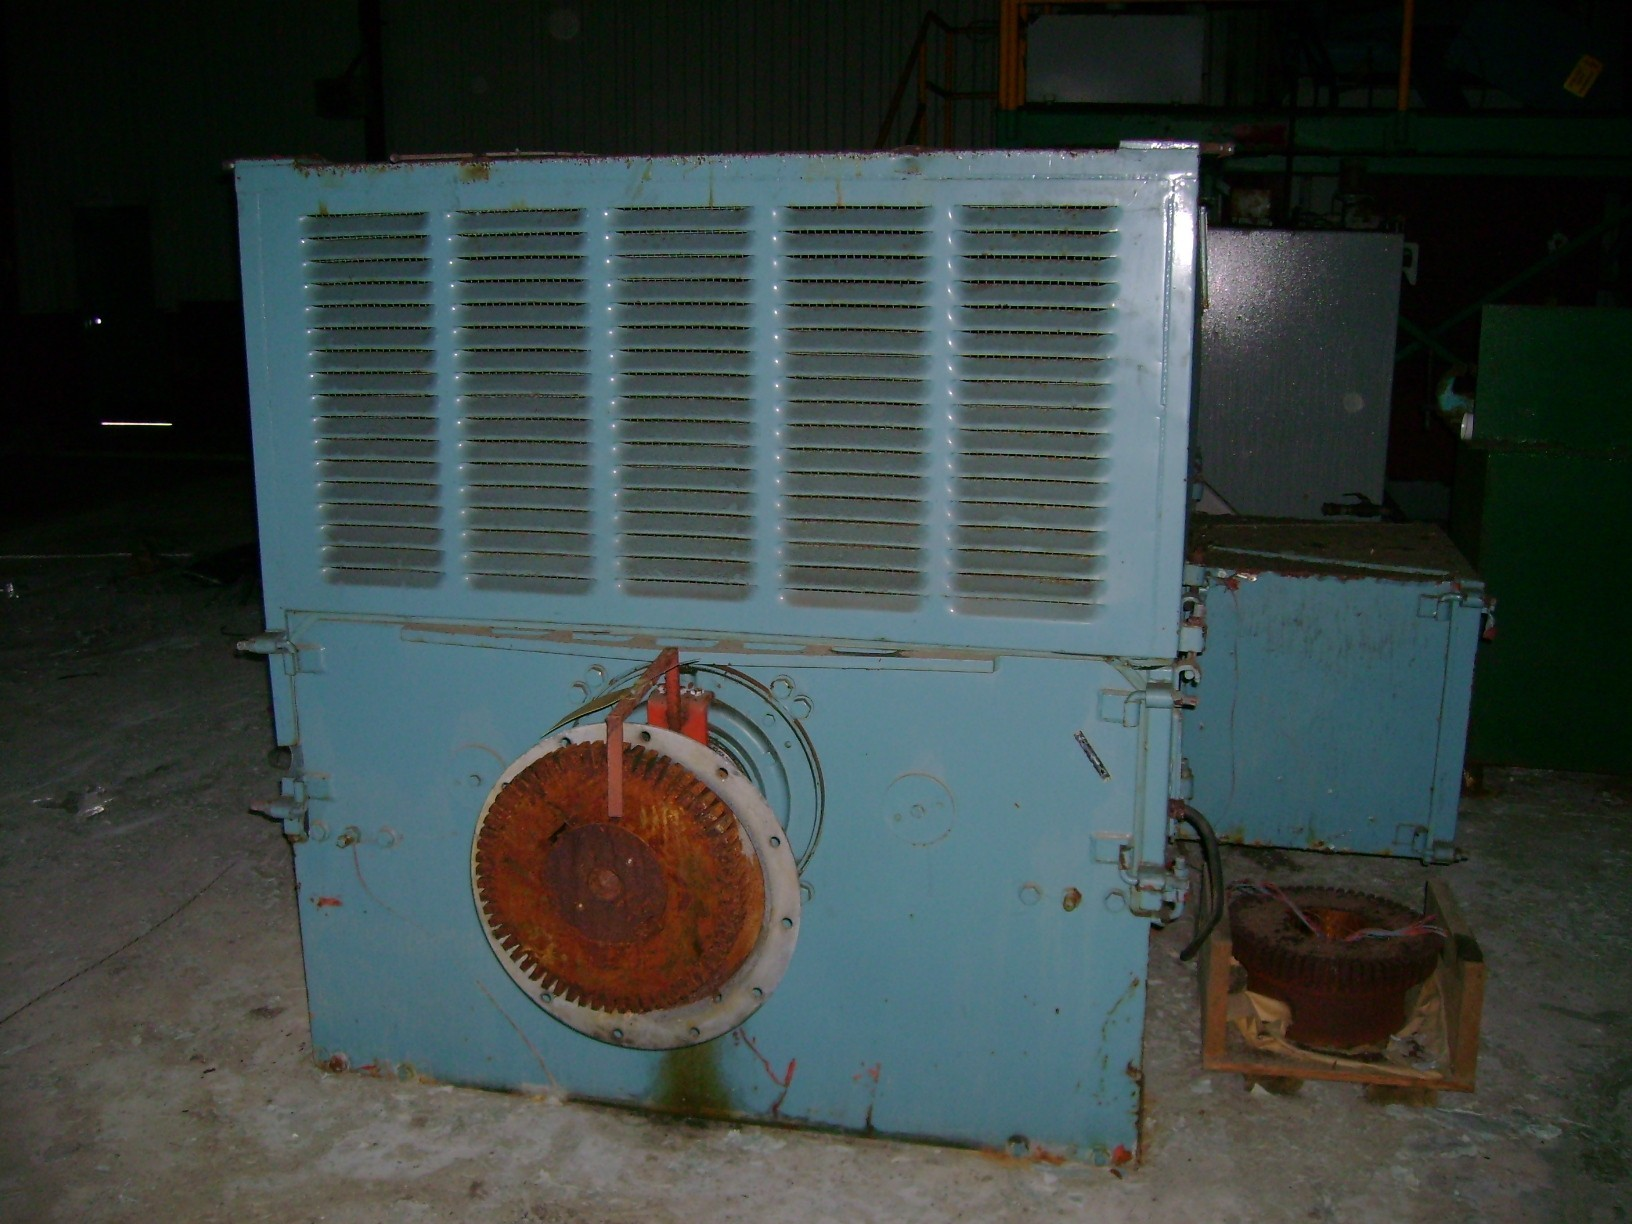 2 Units  - ASEA 2250 KW (3017 HP) Motors, 713 RPM, 6900/1695 V